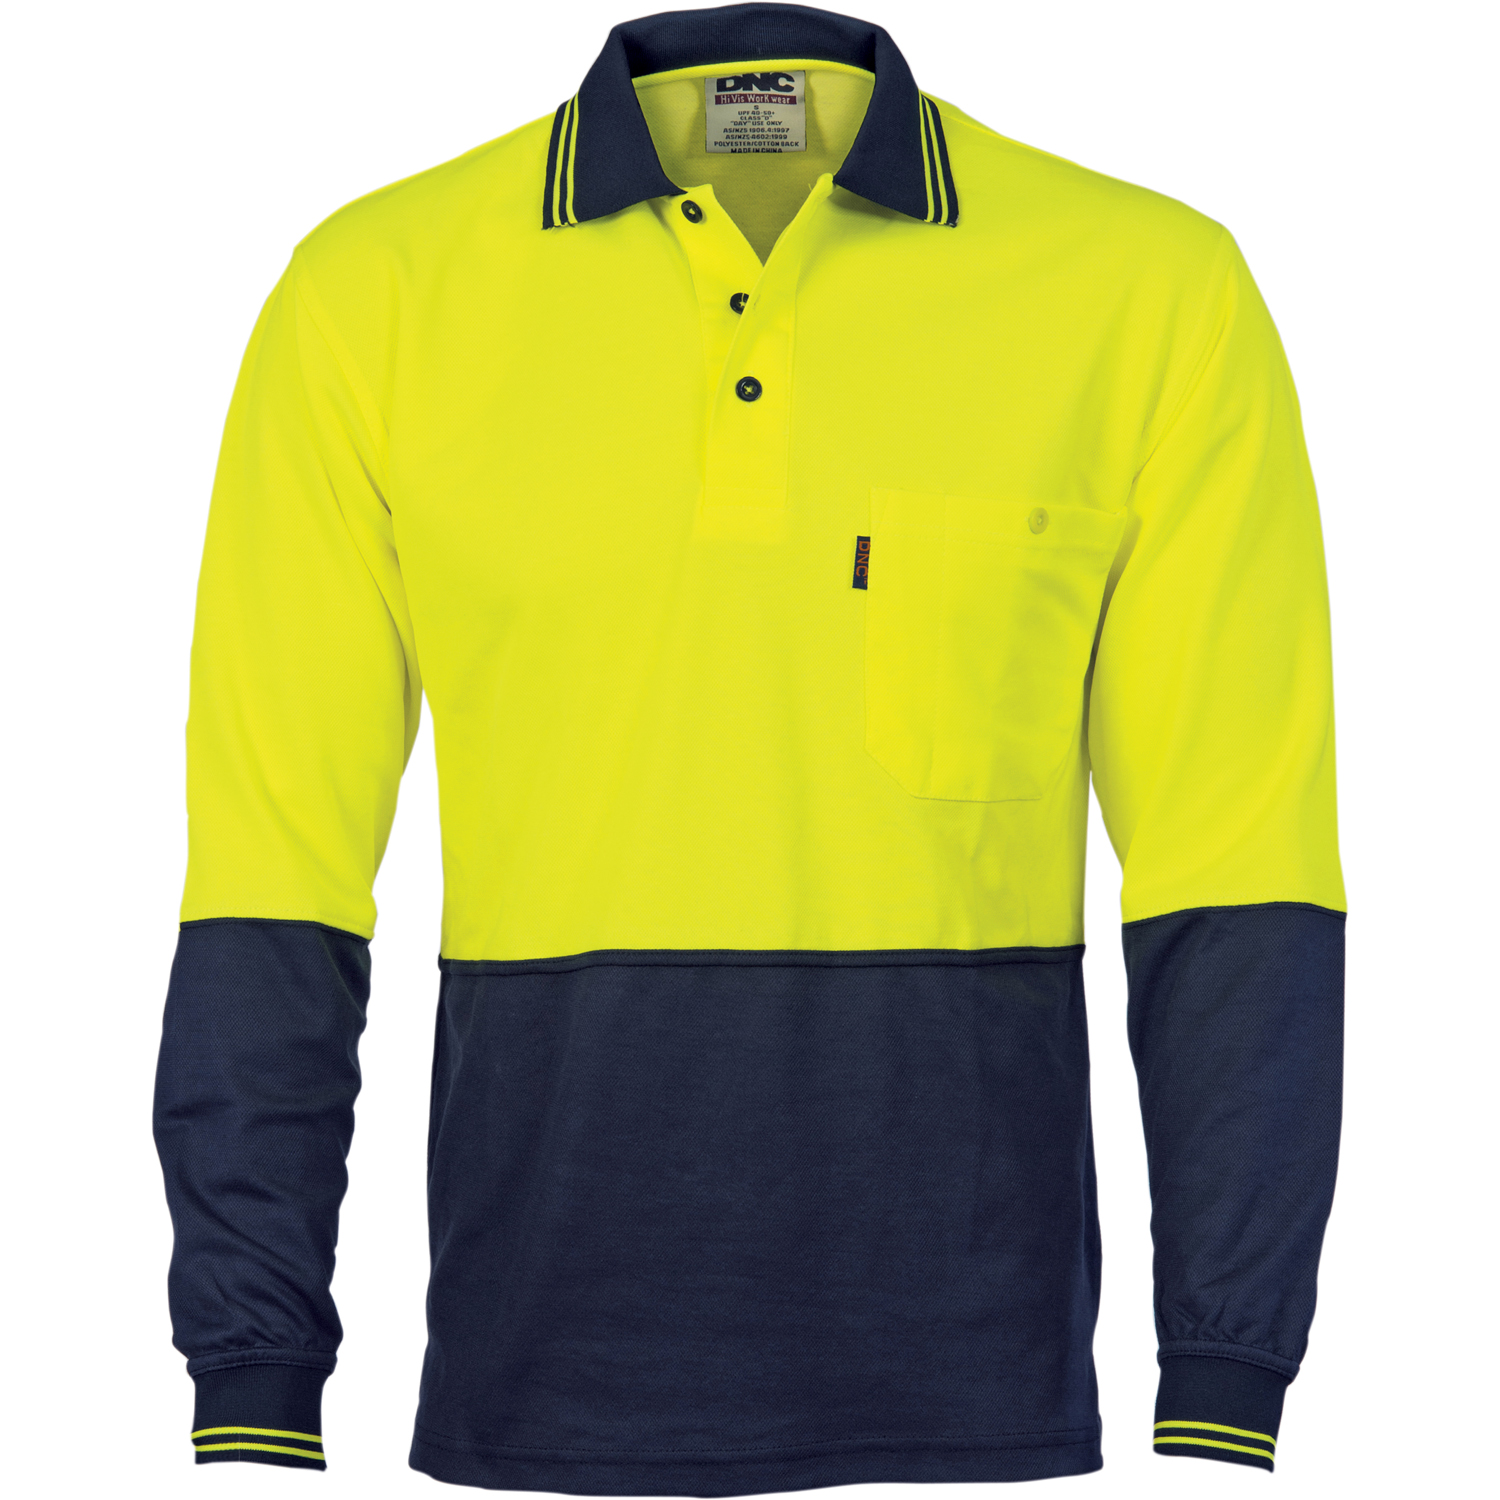 POLO L/S COTTON BACK Y/N SIZE 2XL